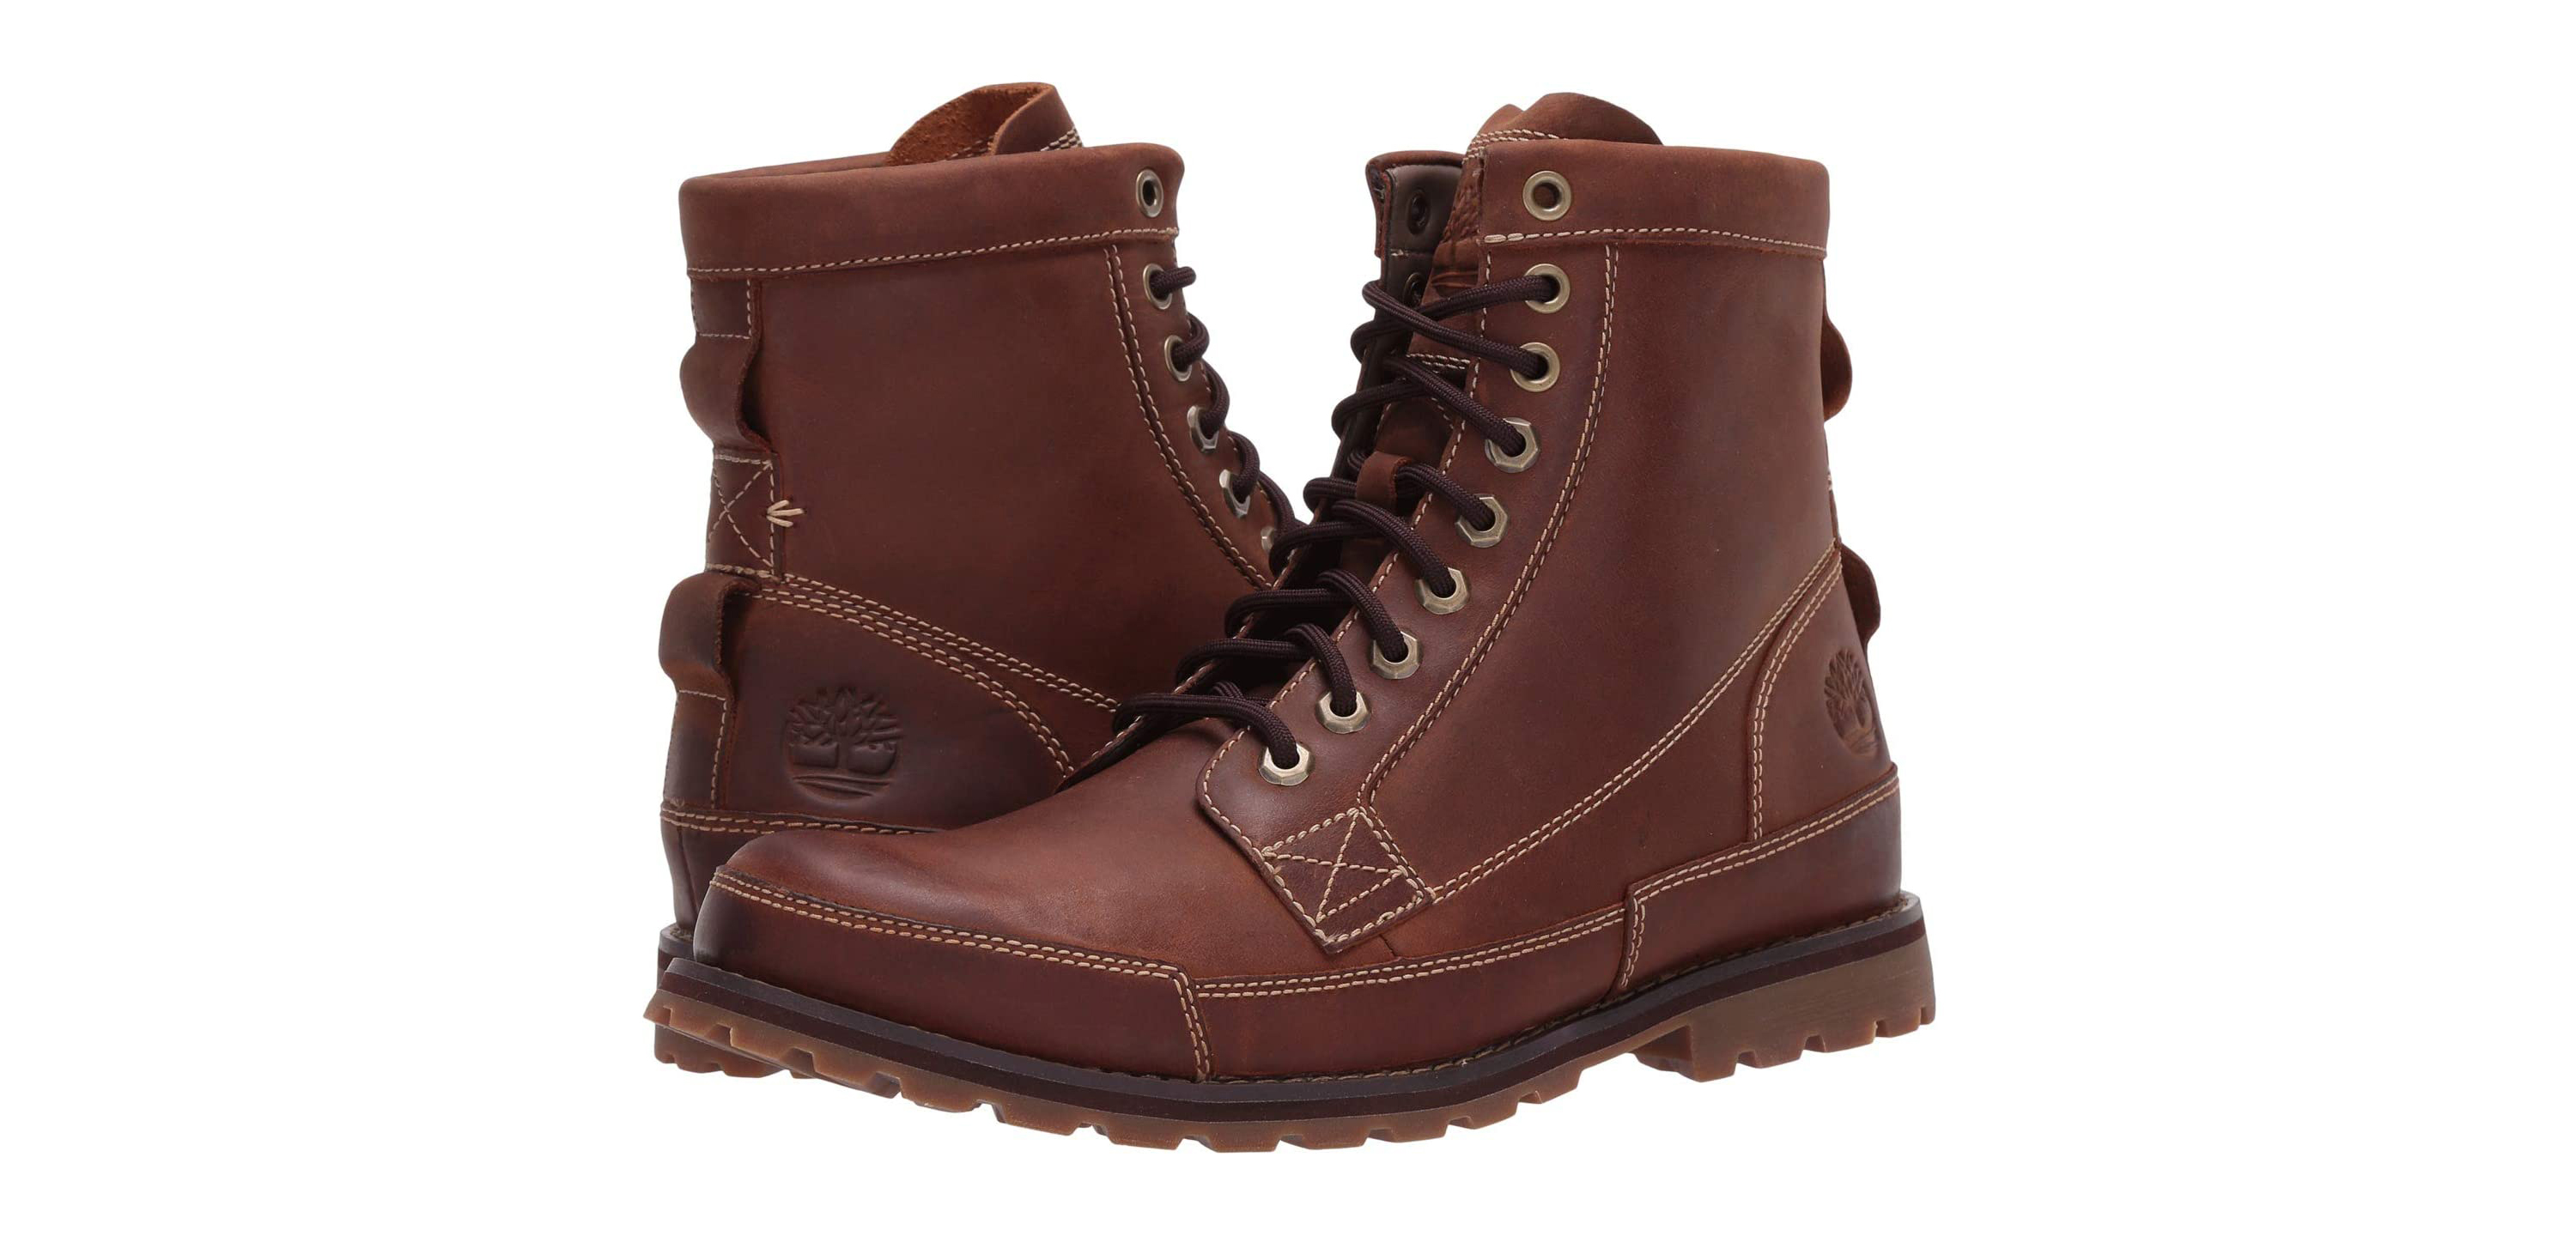 cheapest place to get timberland boots